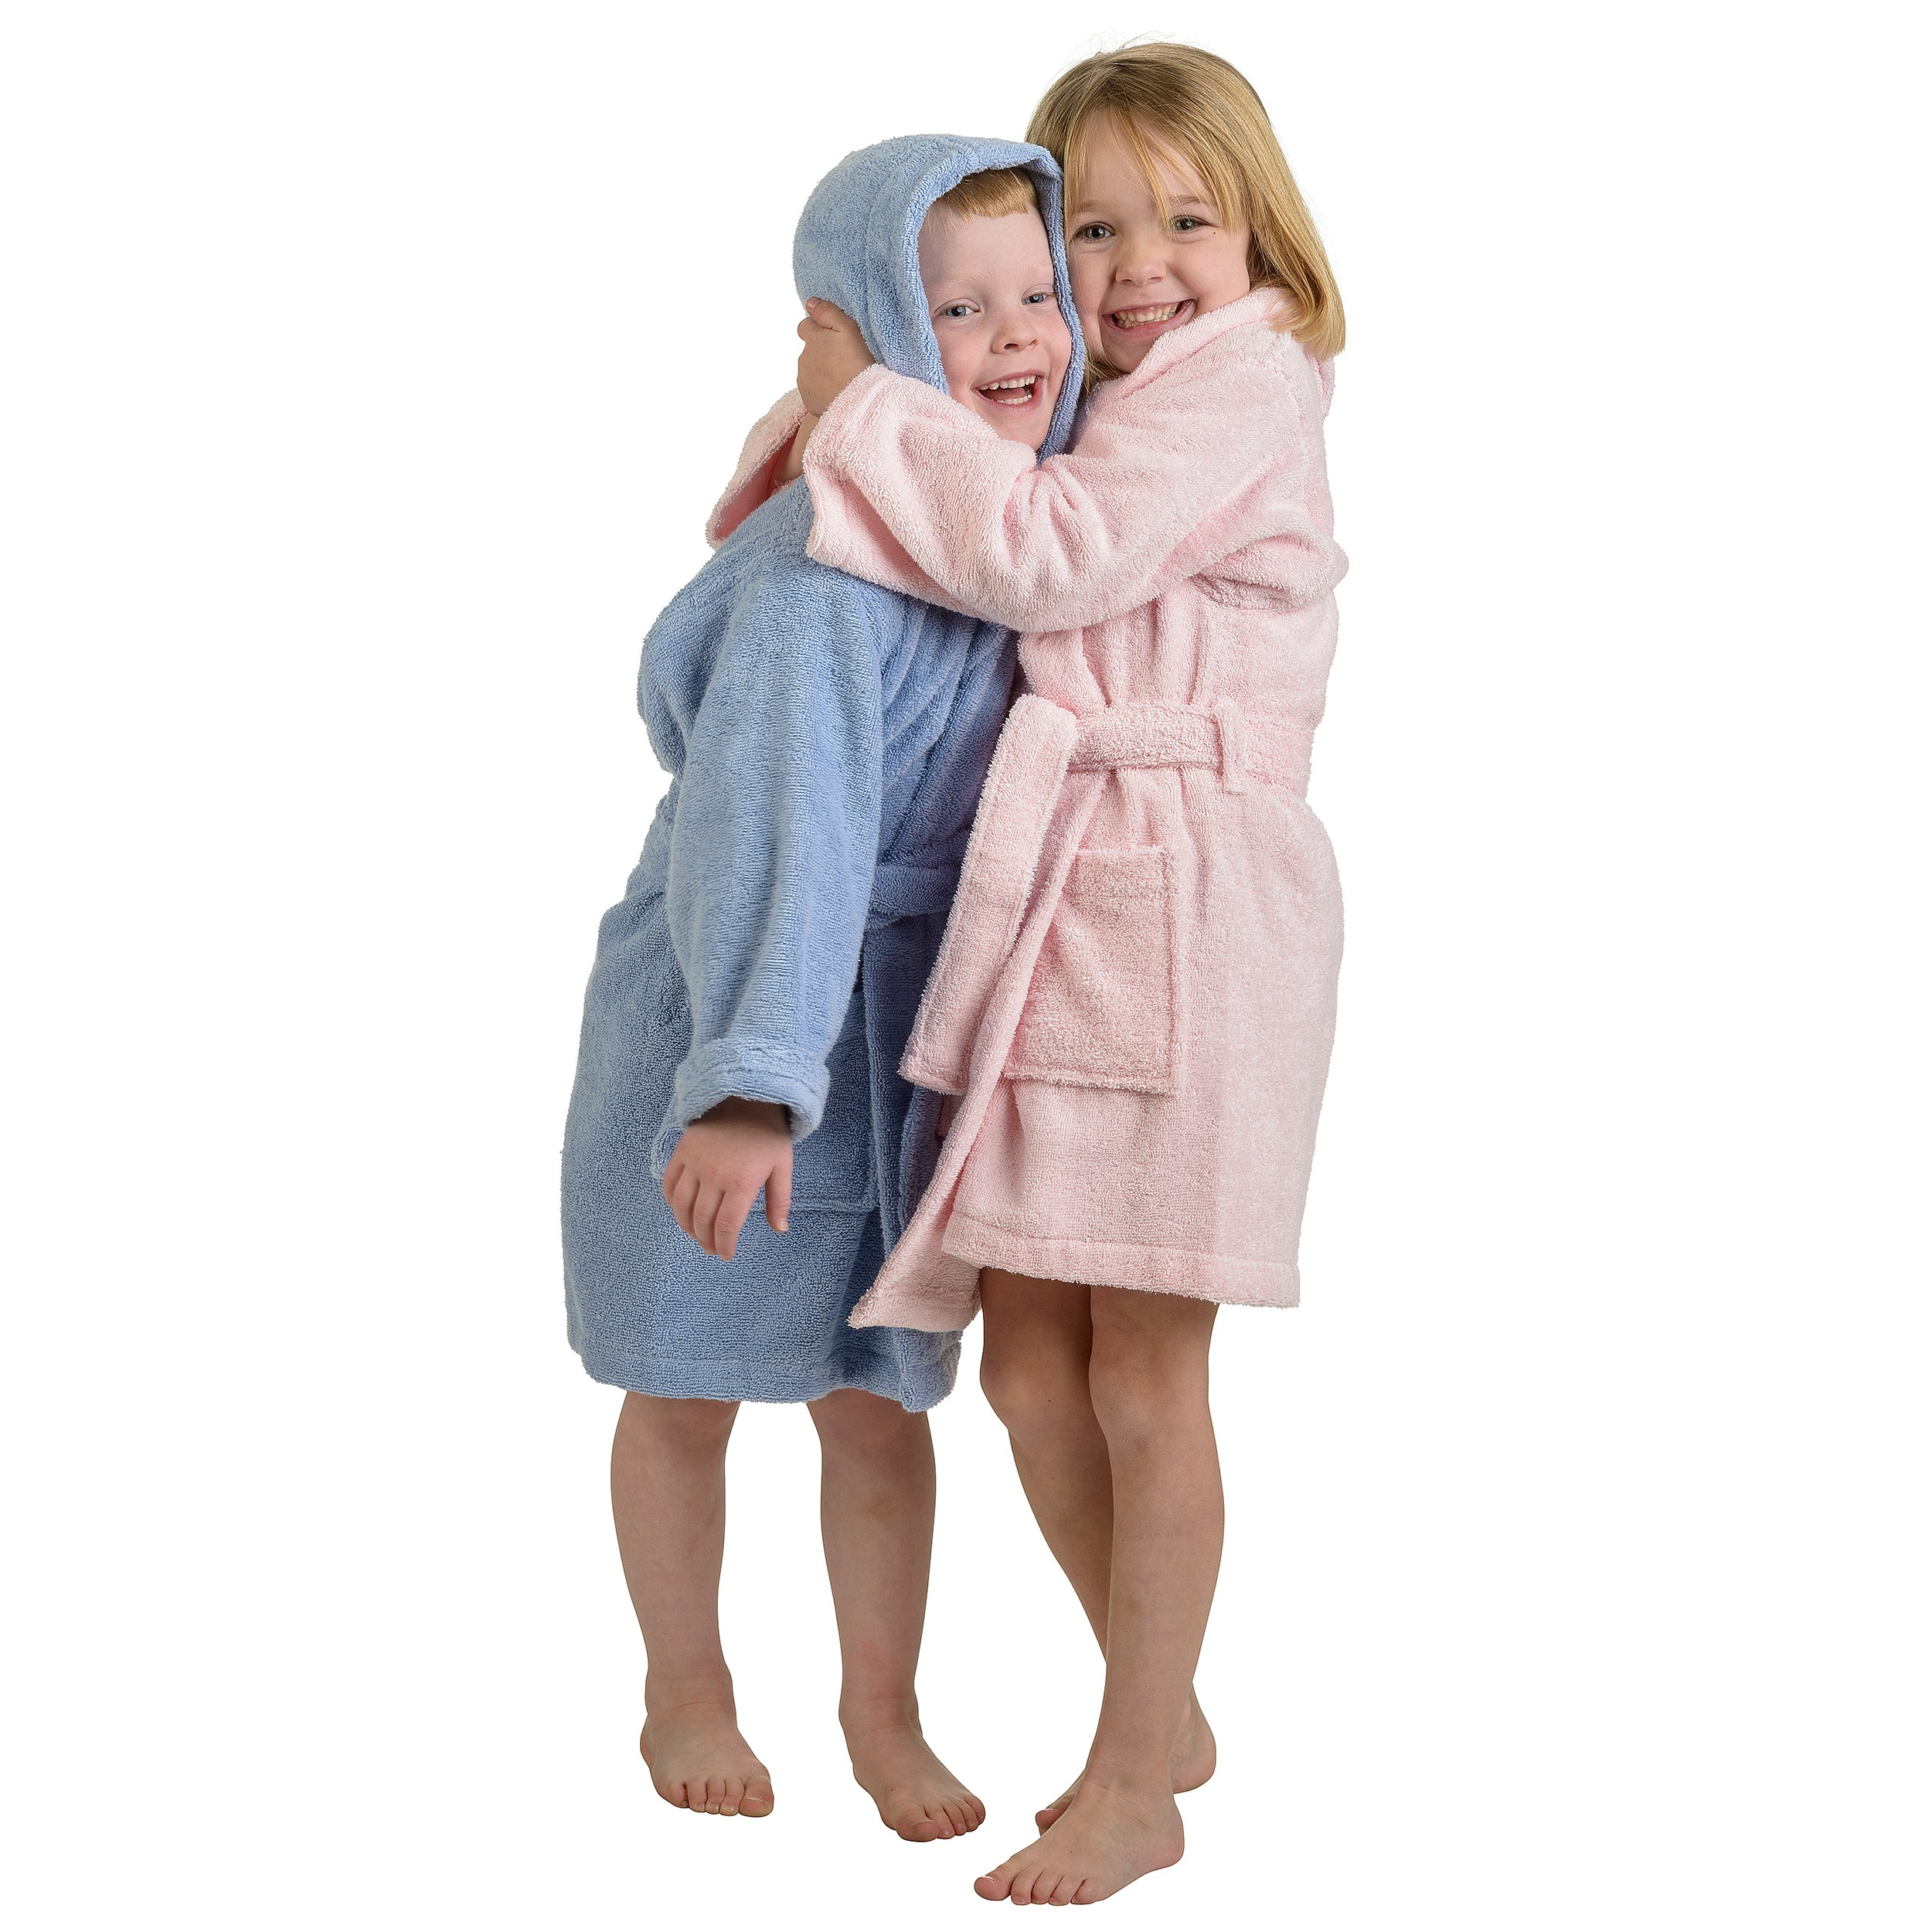 Robe Accommodation: Master Linens Factory Direct Pool-beach Towels, Highest